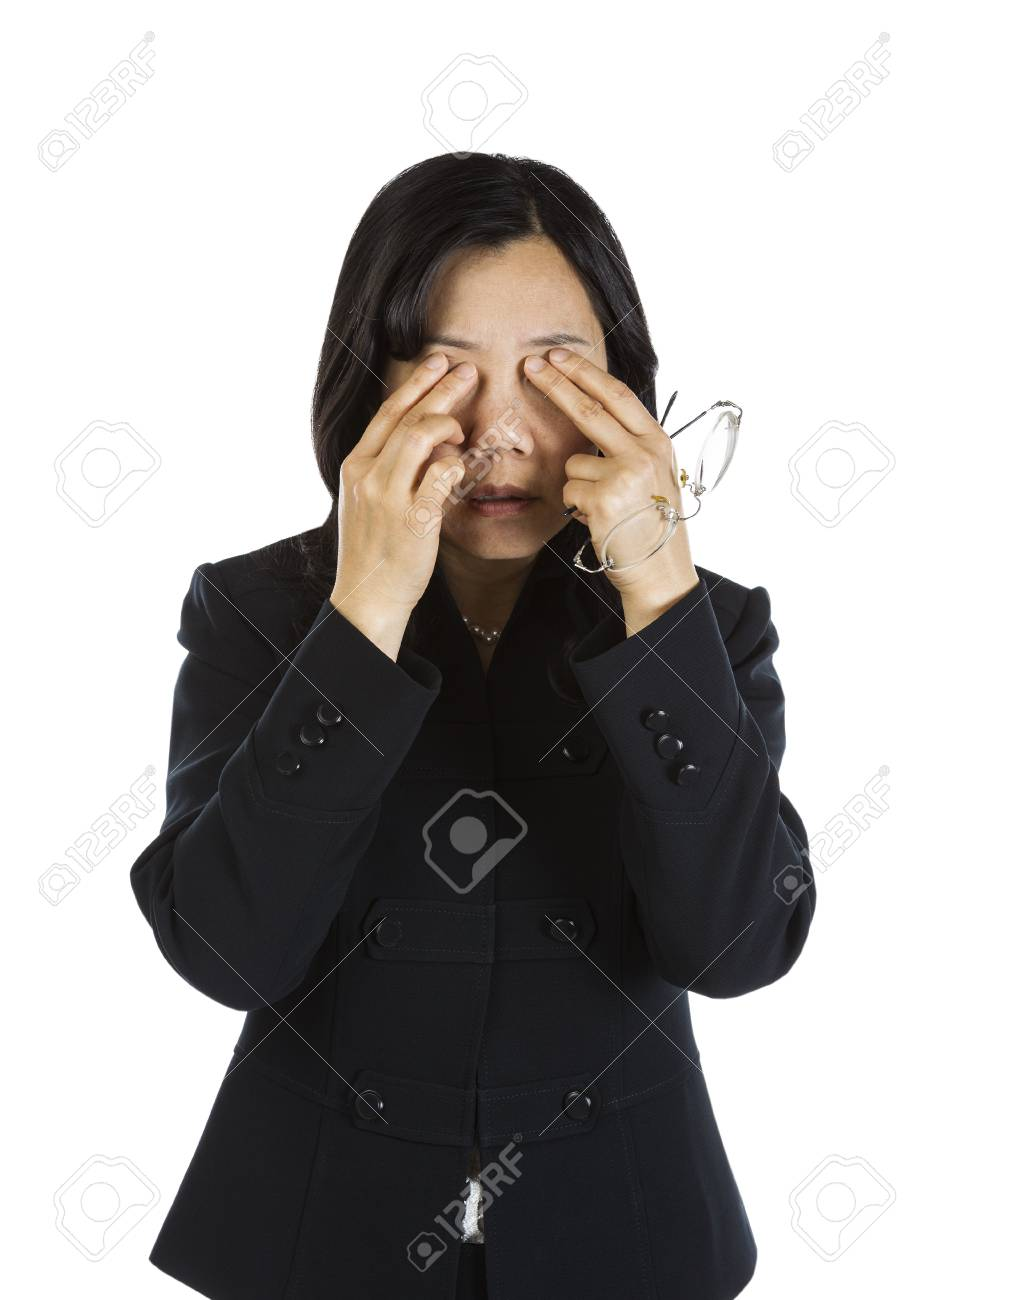 Mature Asian Woman rubbing eyes and holding glasses on white background Stock Photo - 16711067